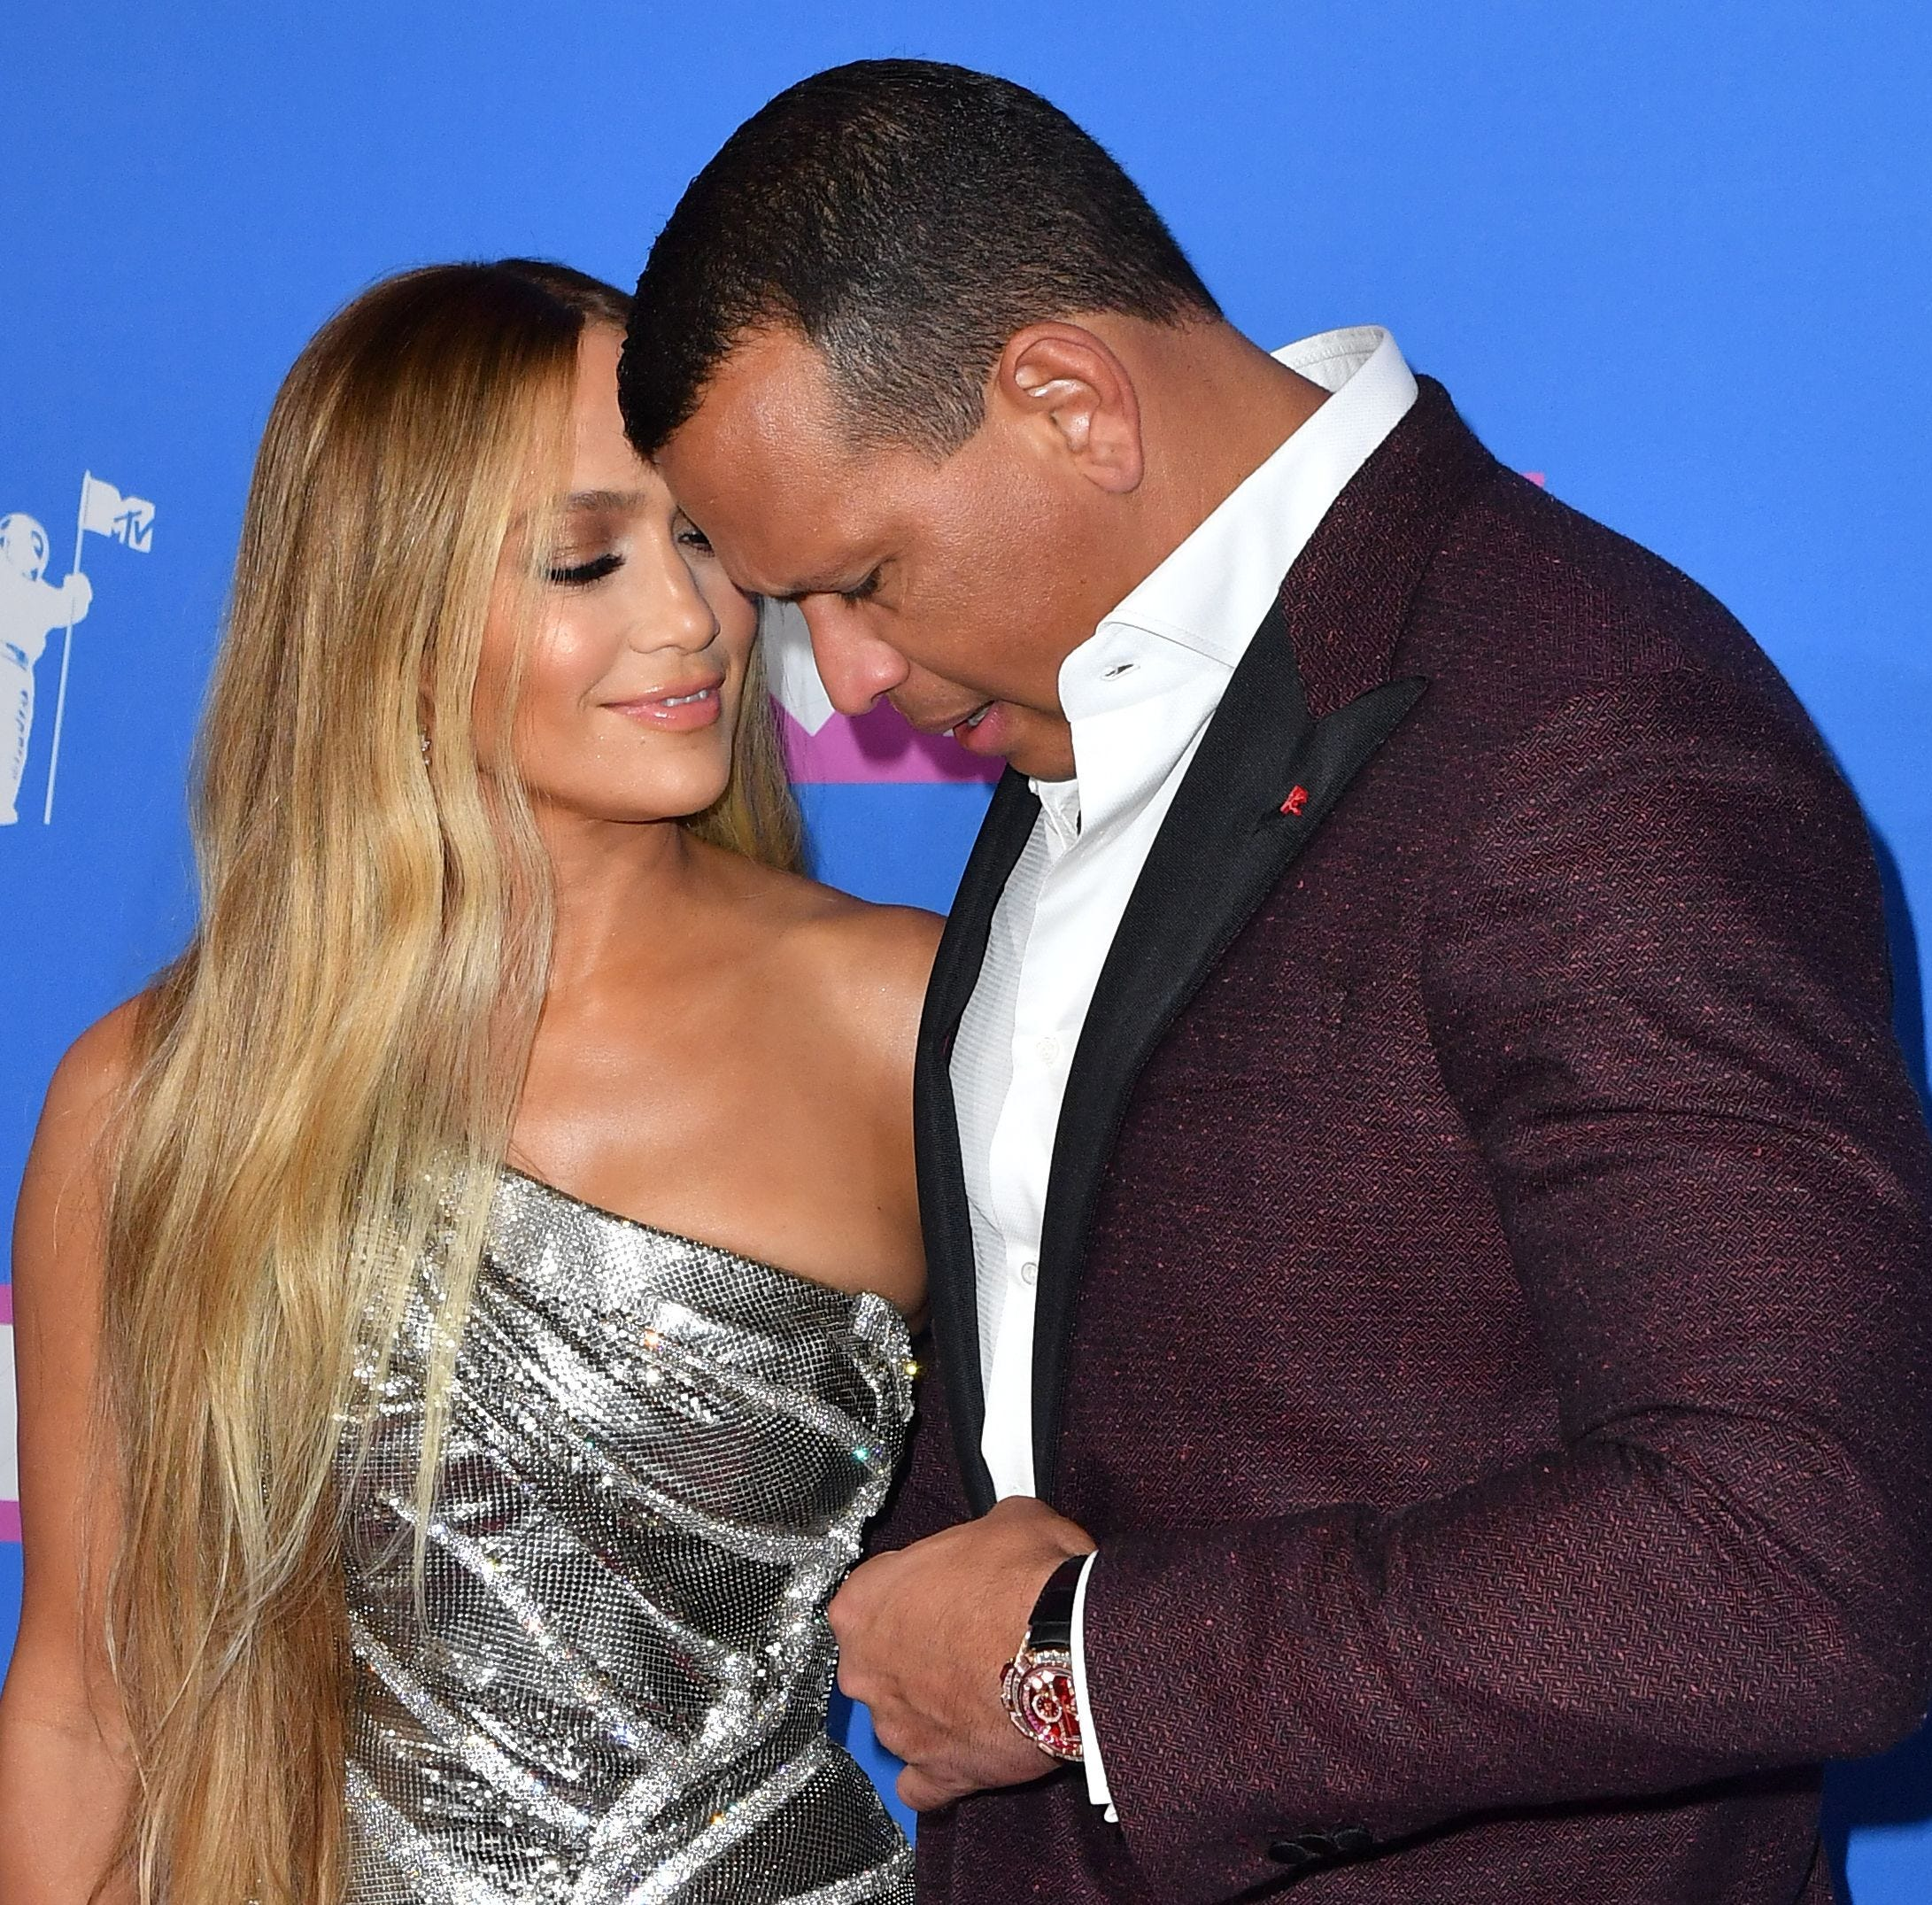 TOPSHOT - US singer Jennifer Lopez (L) and former US baseball player Alex Rodriguez attend the 2018 MTV Video Music Awards at Radio City Music Hall on August 20, 2018 in New York City. (Photo by ANGELA WEISS / AFP)ANGELA WEISS/AFP/Getty Images ORG XMIT: 2018 MTV ORIG FILE ID: AFP_18H94R